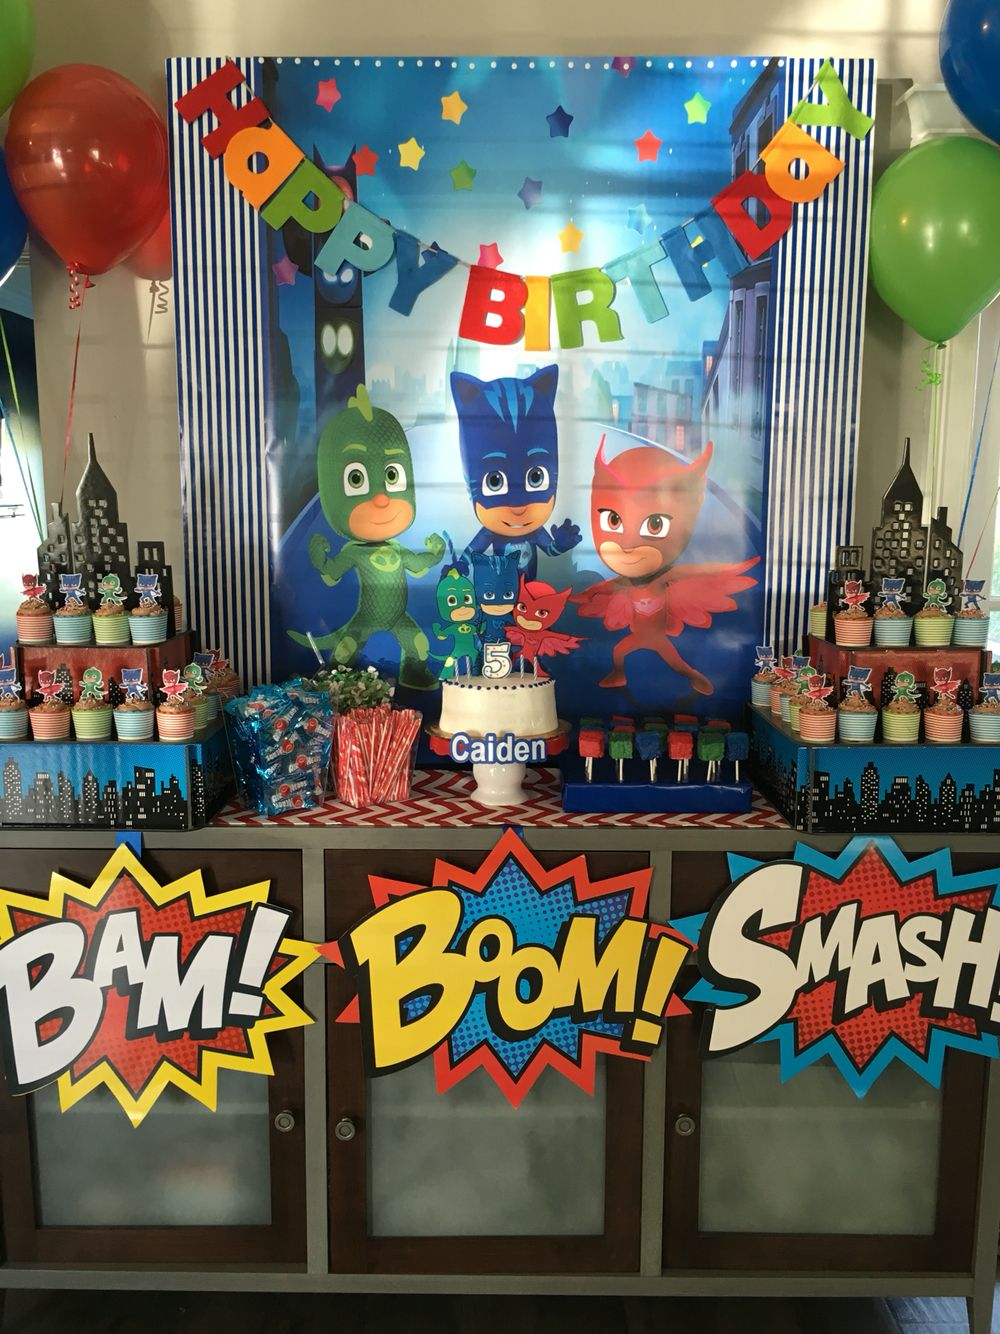 Pj masks party diy party ideas pinterest pj mask for 5th birthday decoration ideas